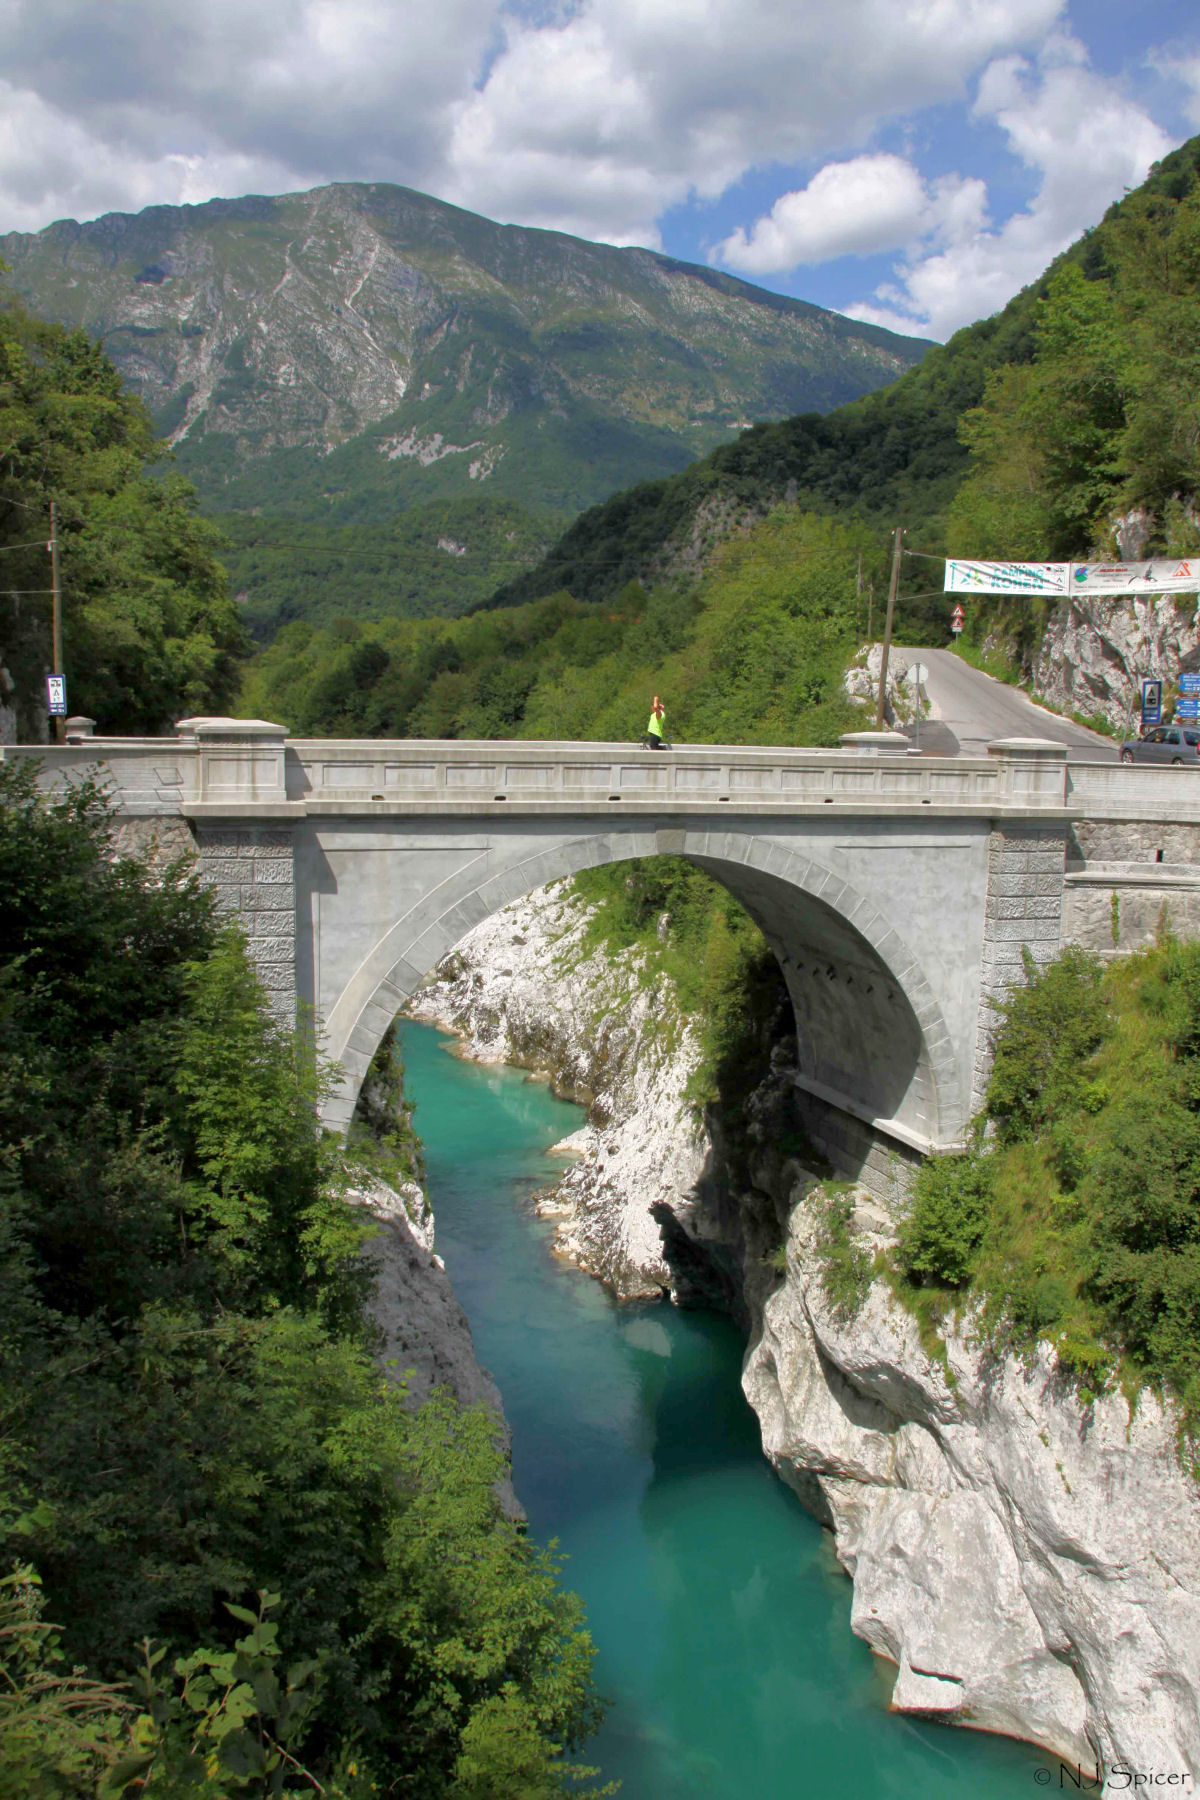 Napoleon Bridge over the Soca river near the town of Kobarid, Slovenia